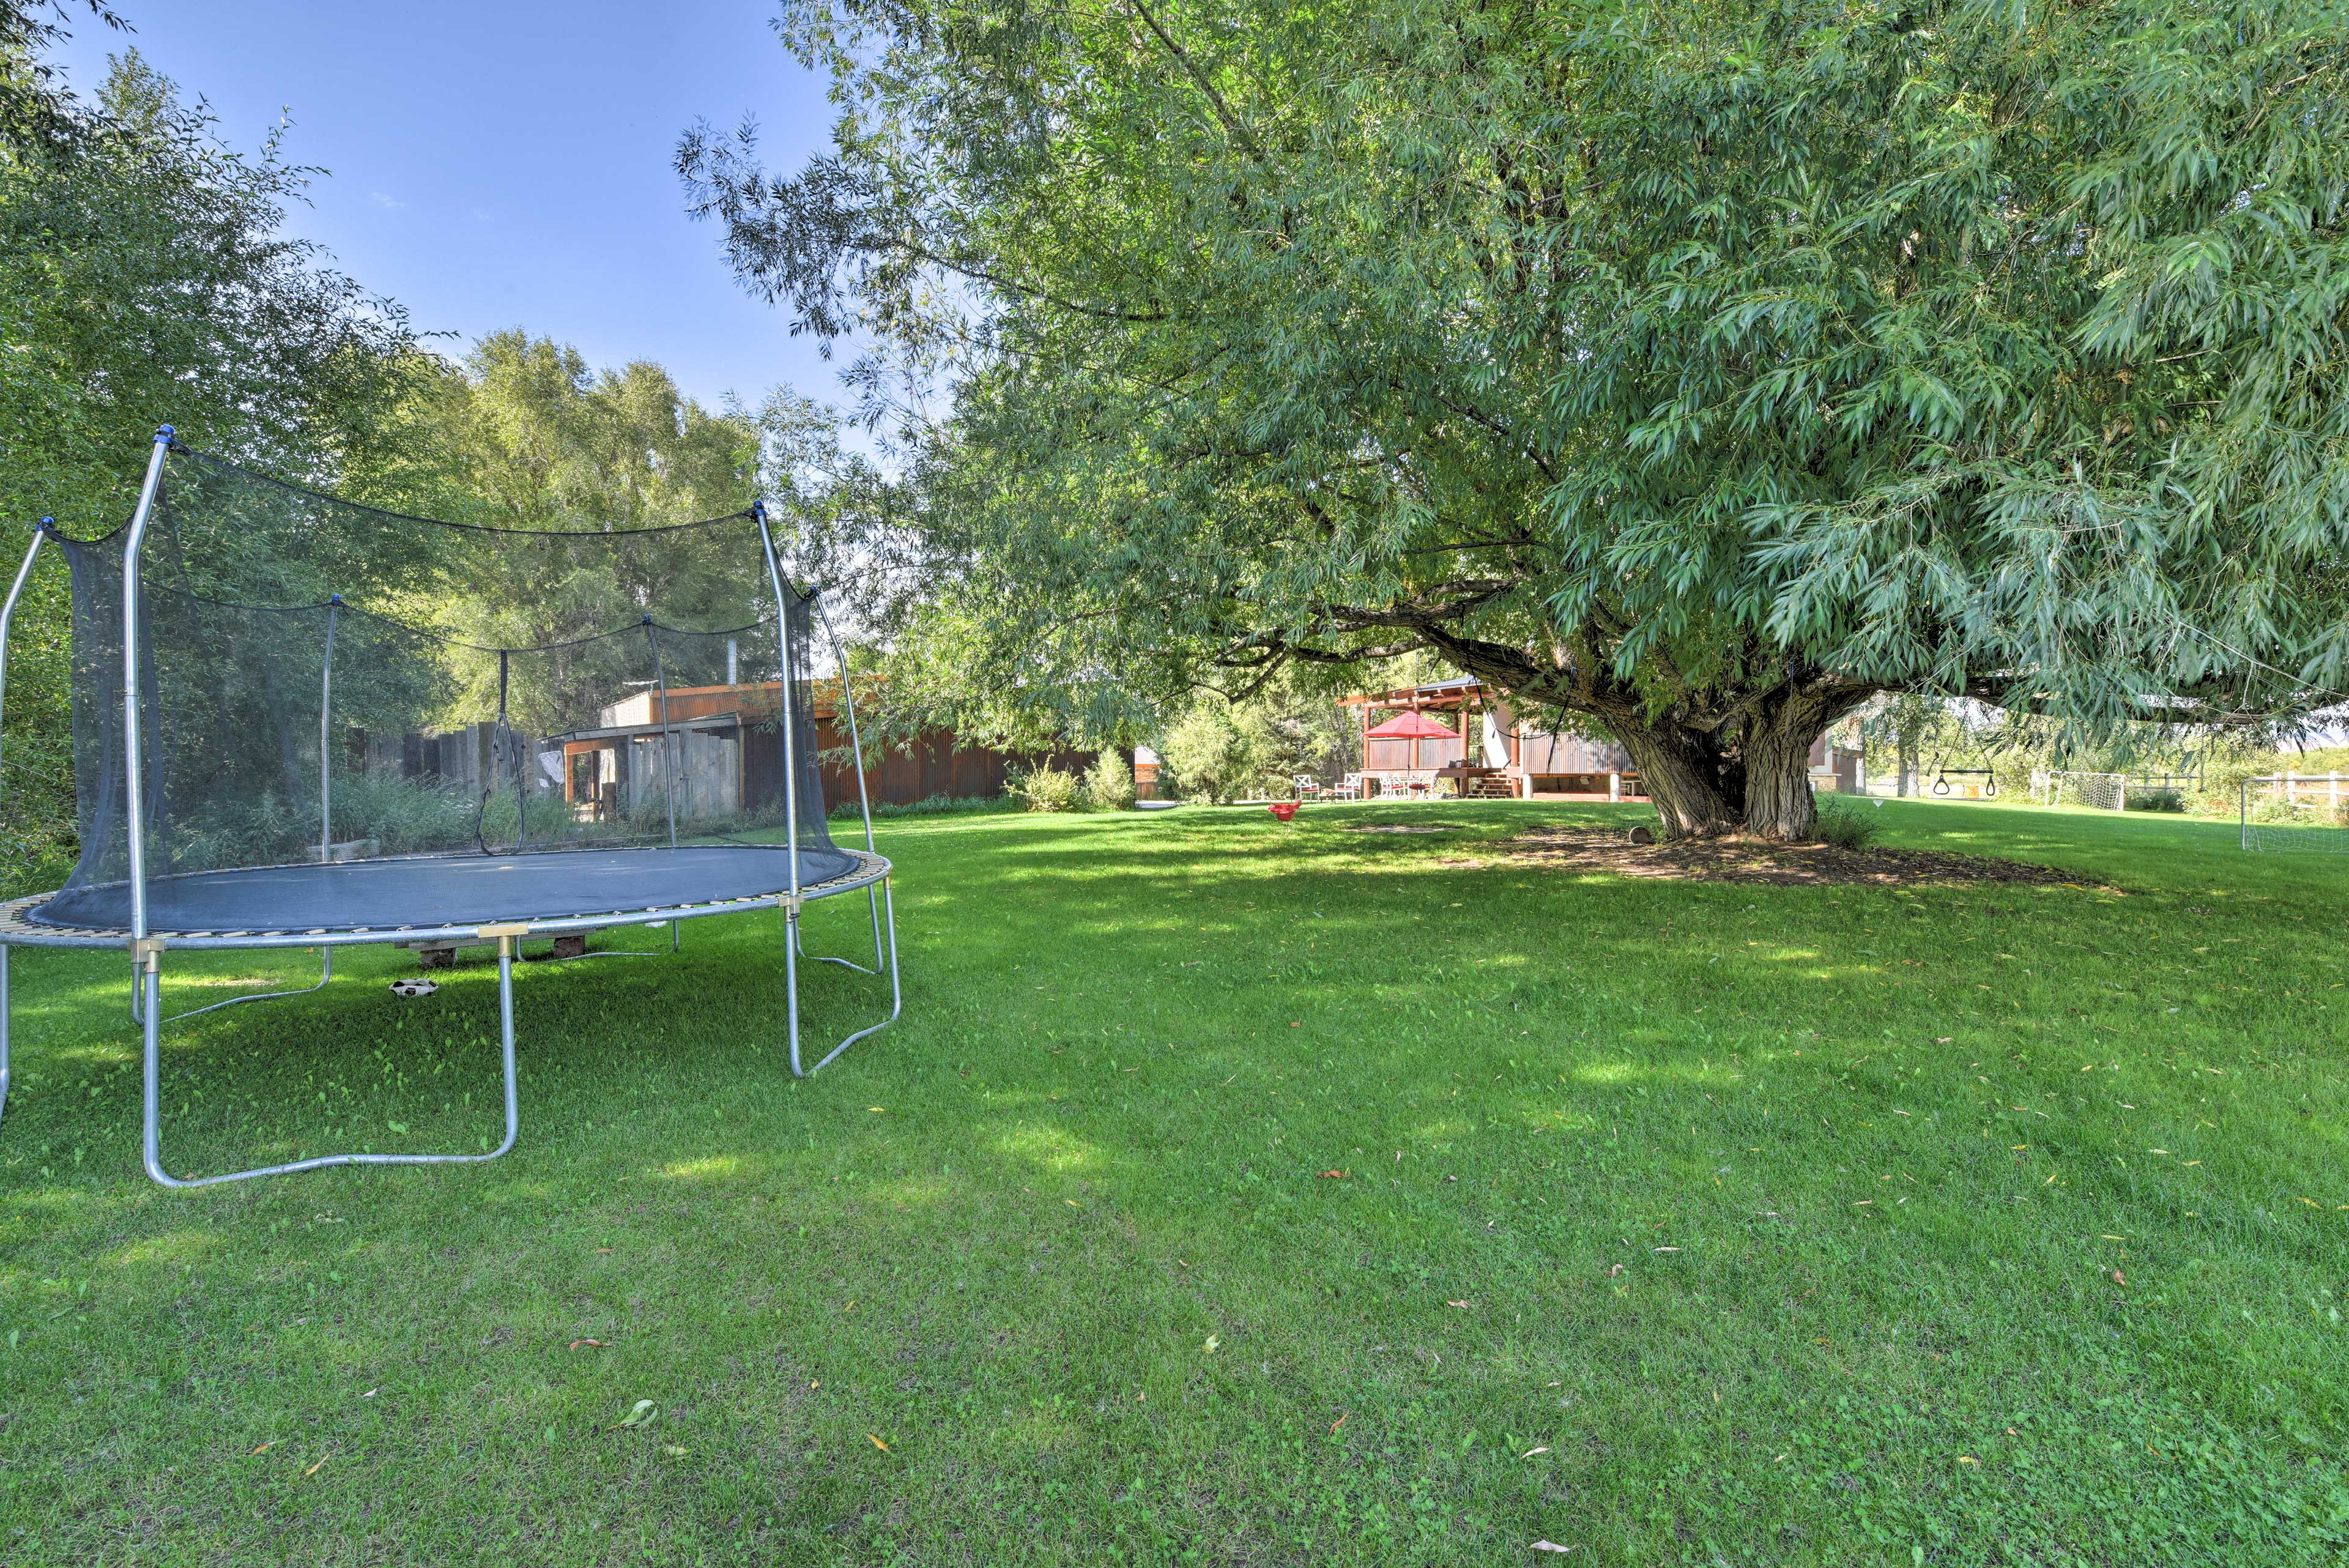 Private Yard | Tall Trees | Privacy | Trampoline